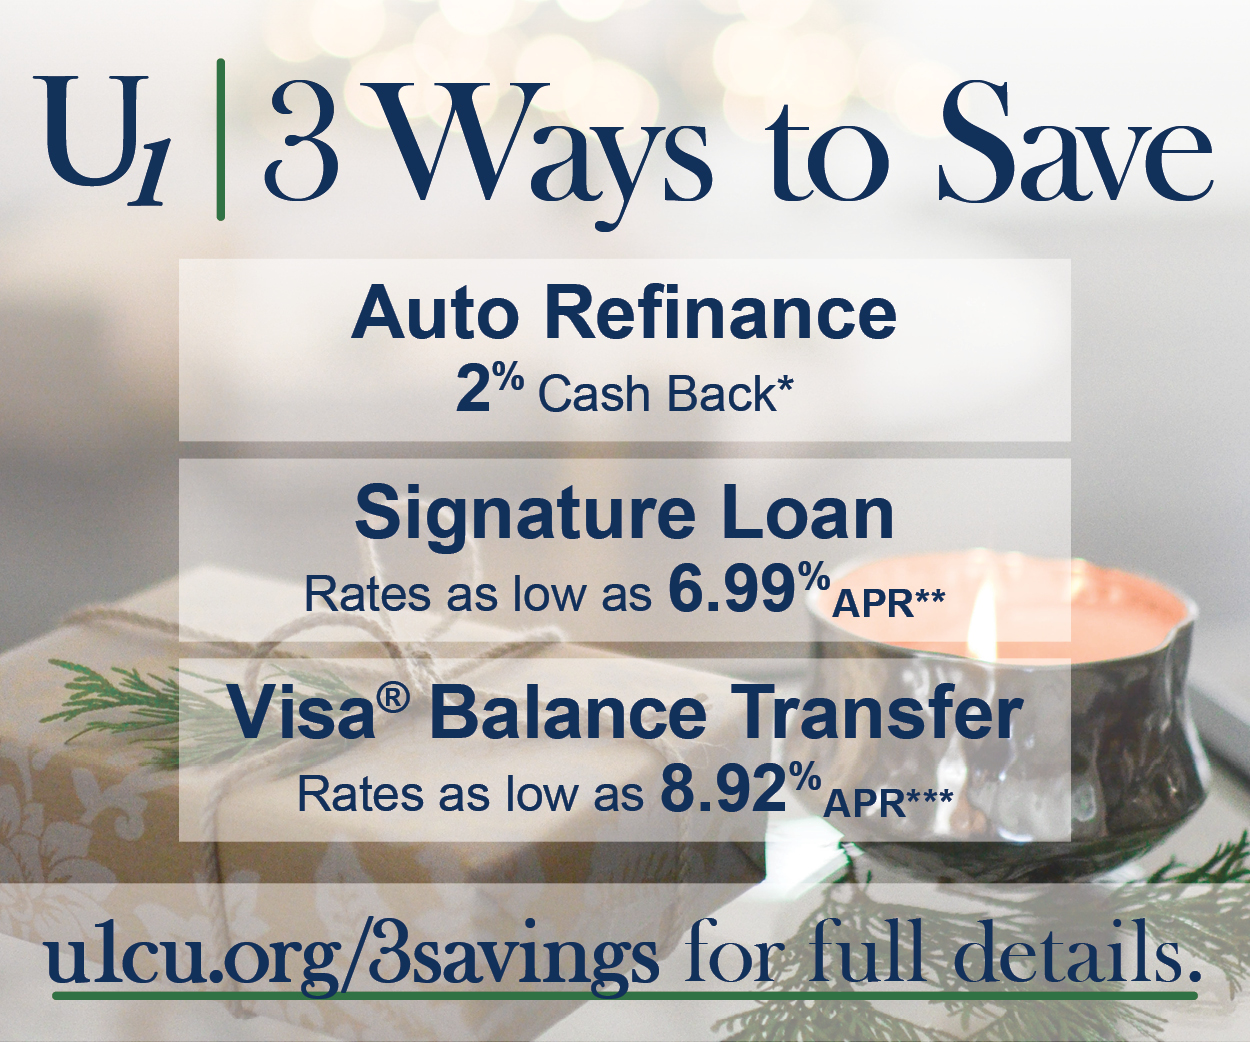 3 Ways to Save. 2% cash back on Auto Refinancing. Signature loan rates as low as 6.99% APR. VISA $0 Balance Transfer fee